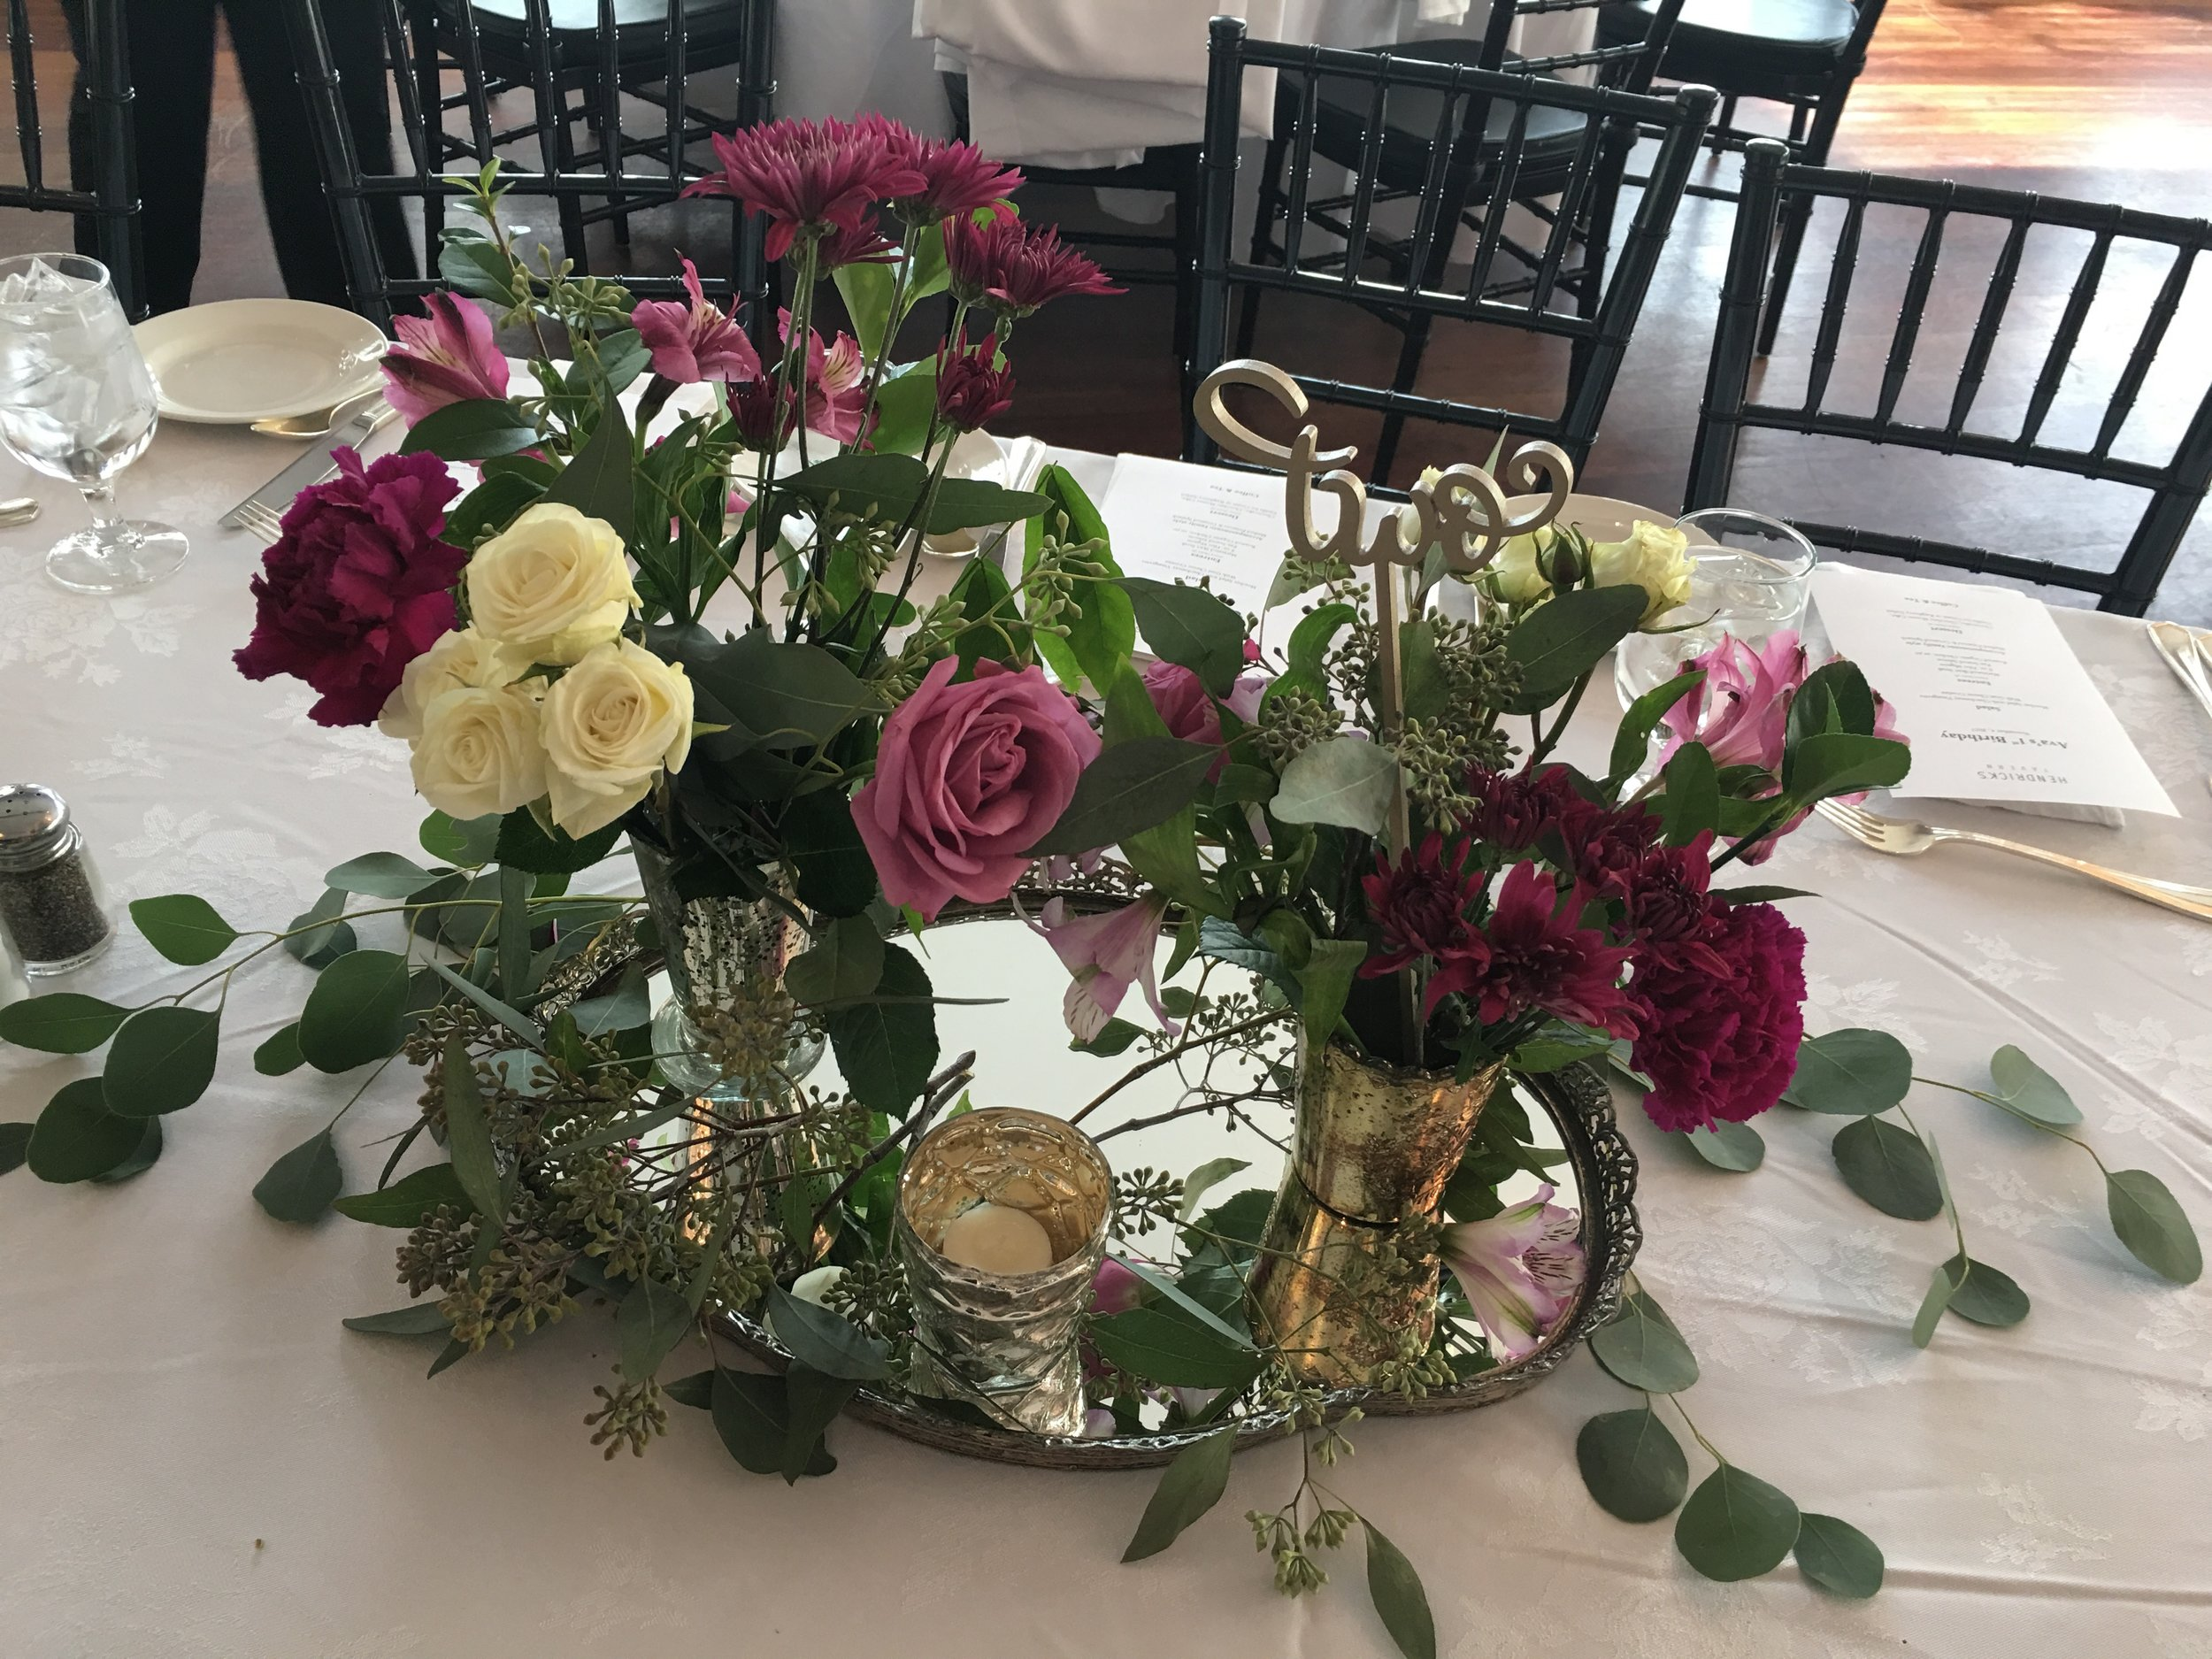 beautiful-and-blessed-events-hendricks-tavern-first-birthday-ava-rose-006